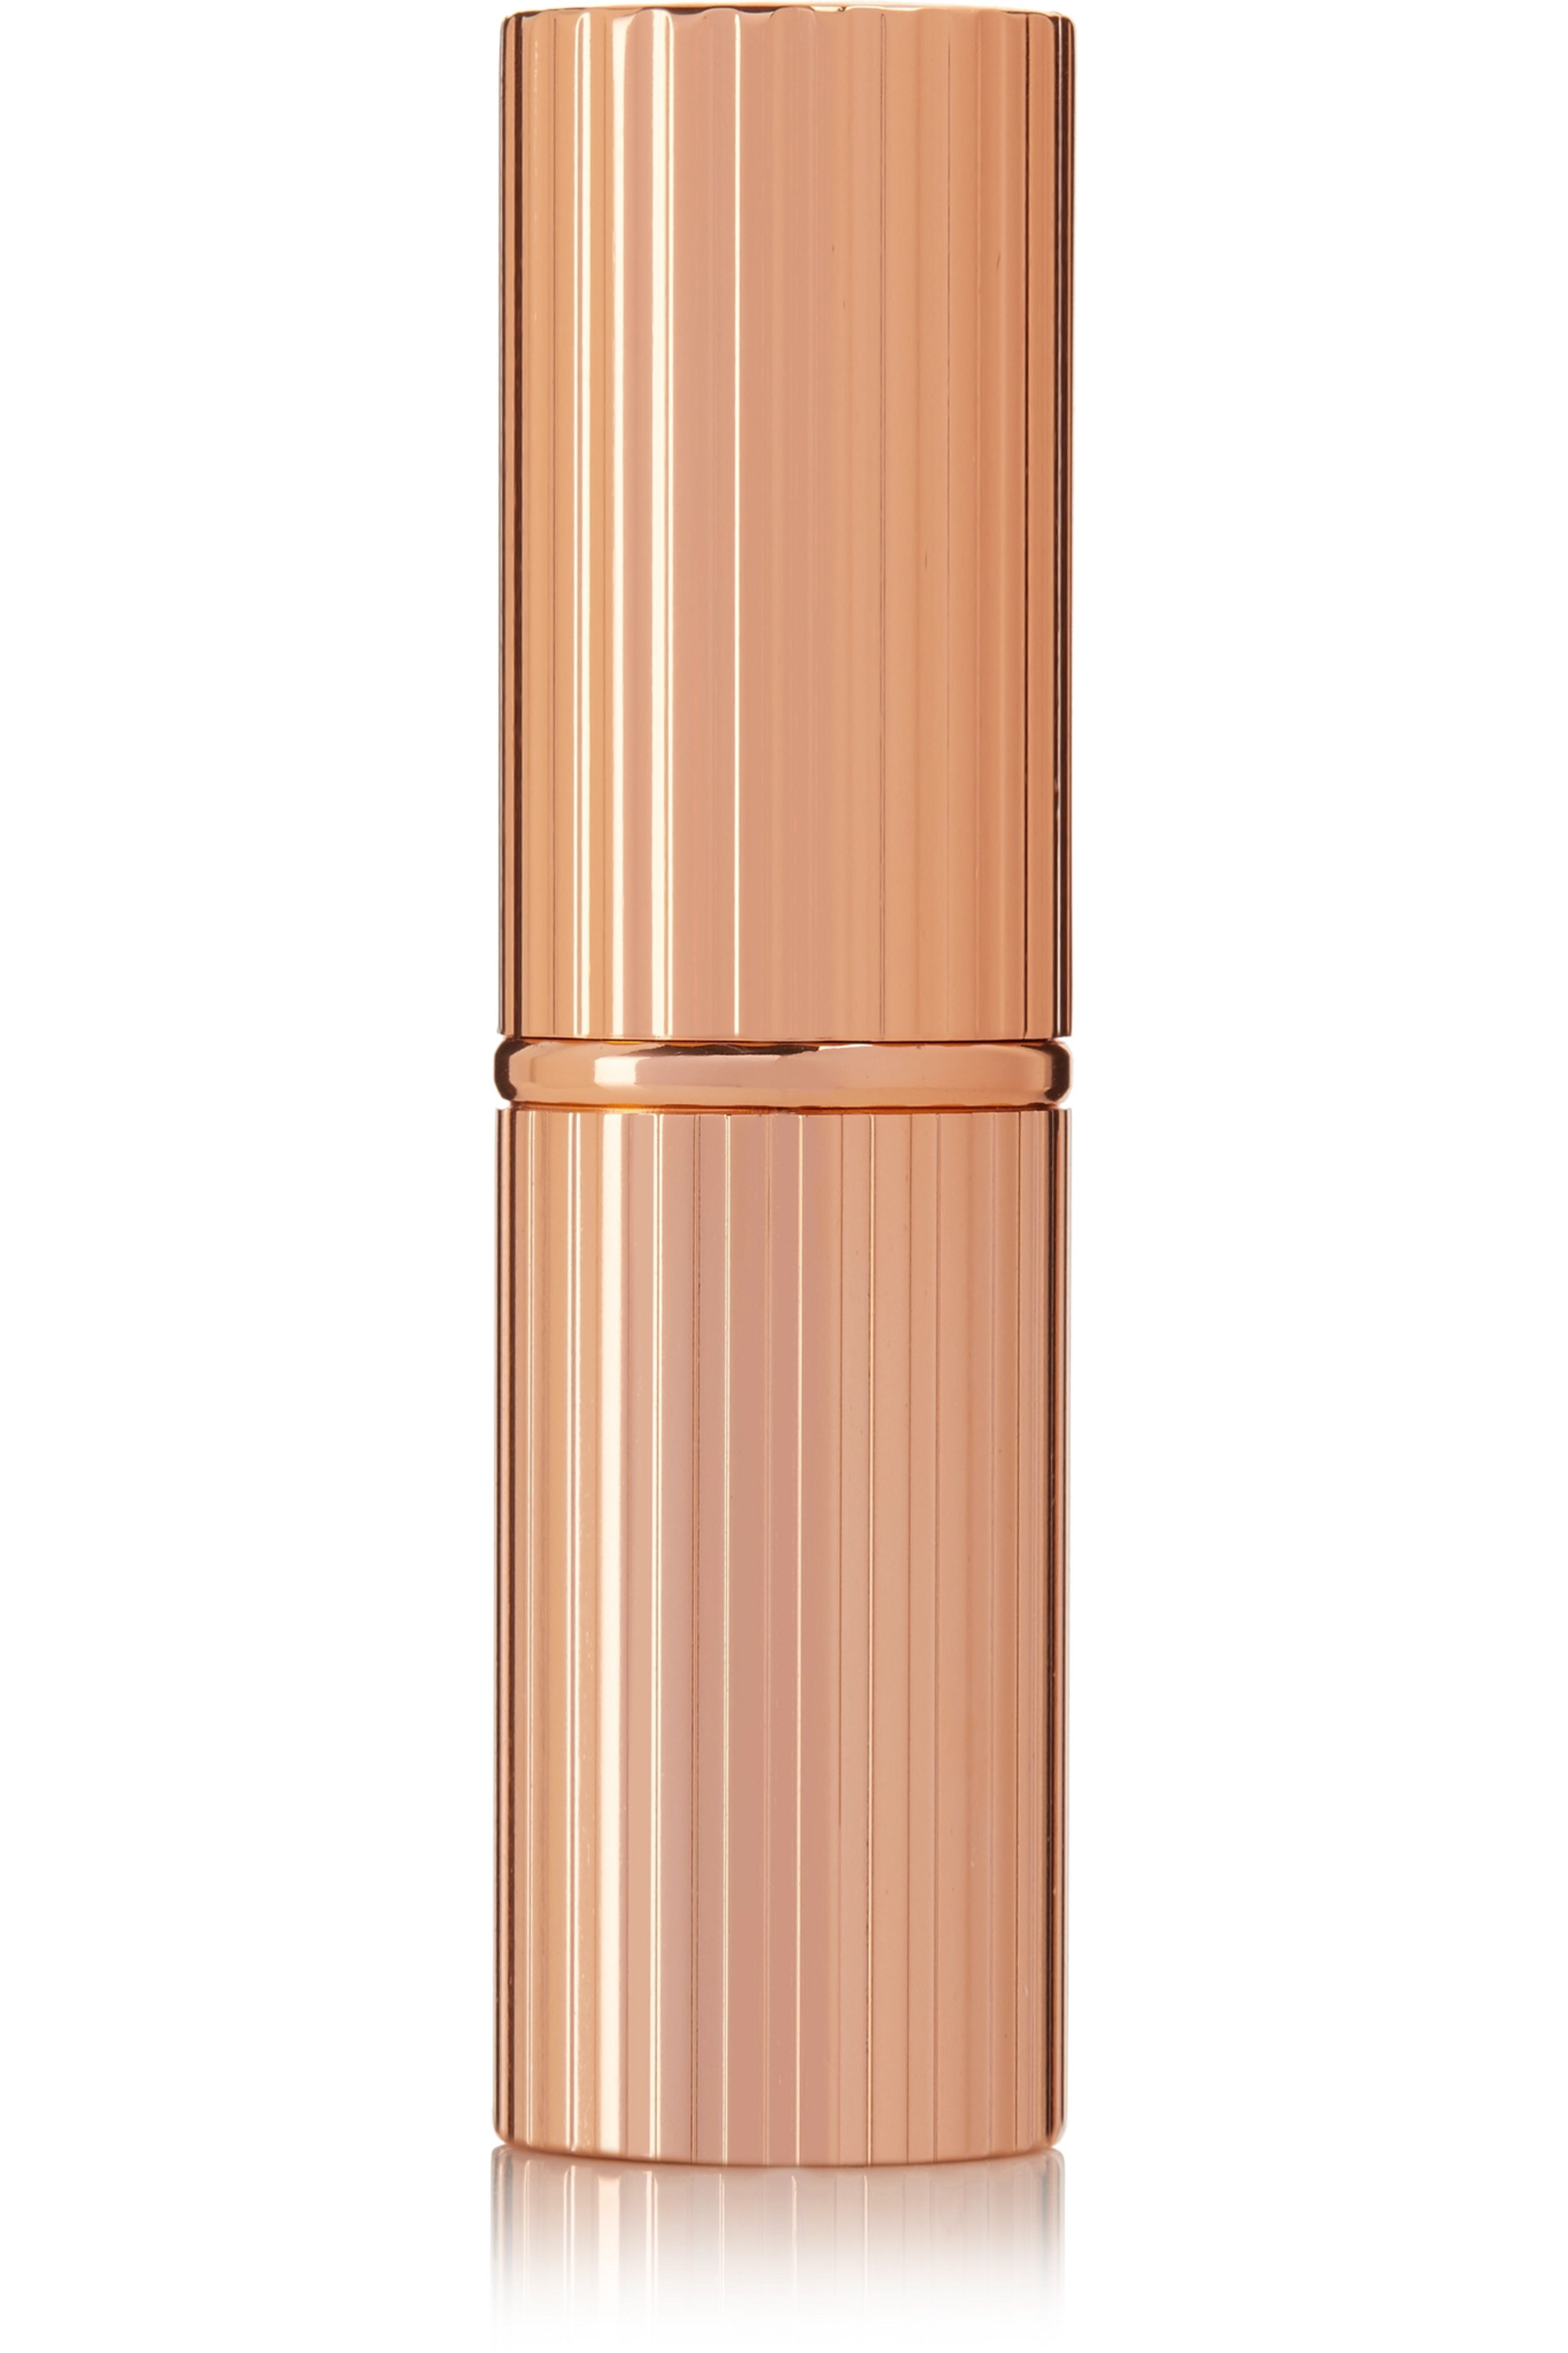 Charlotte Tilbury Hot Lips Lipstick - Super Cindy